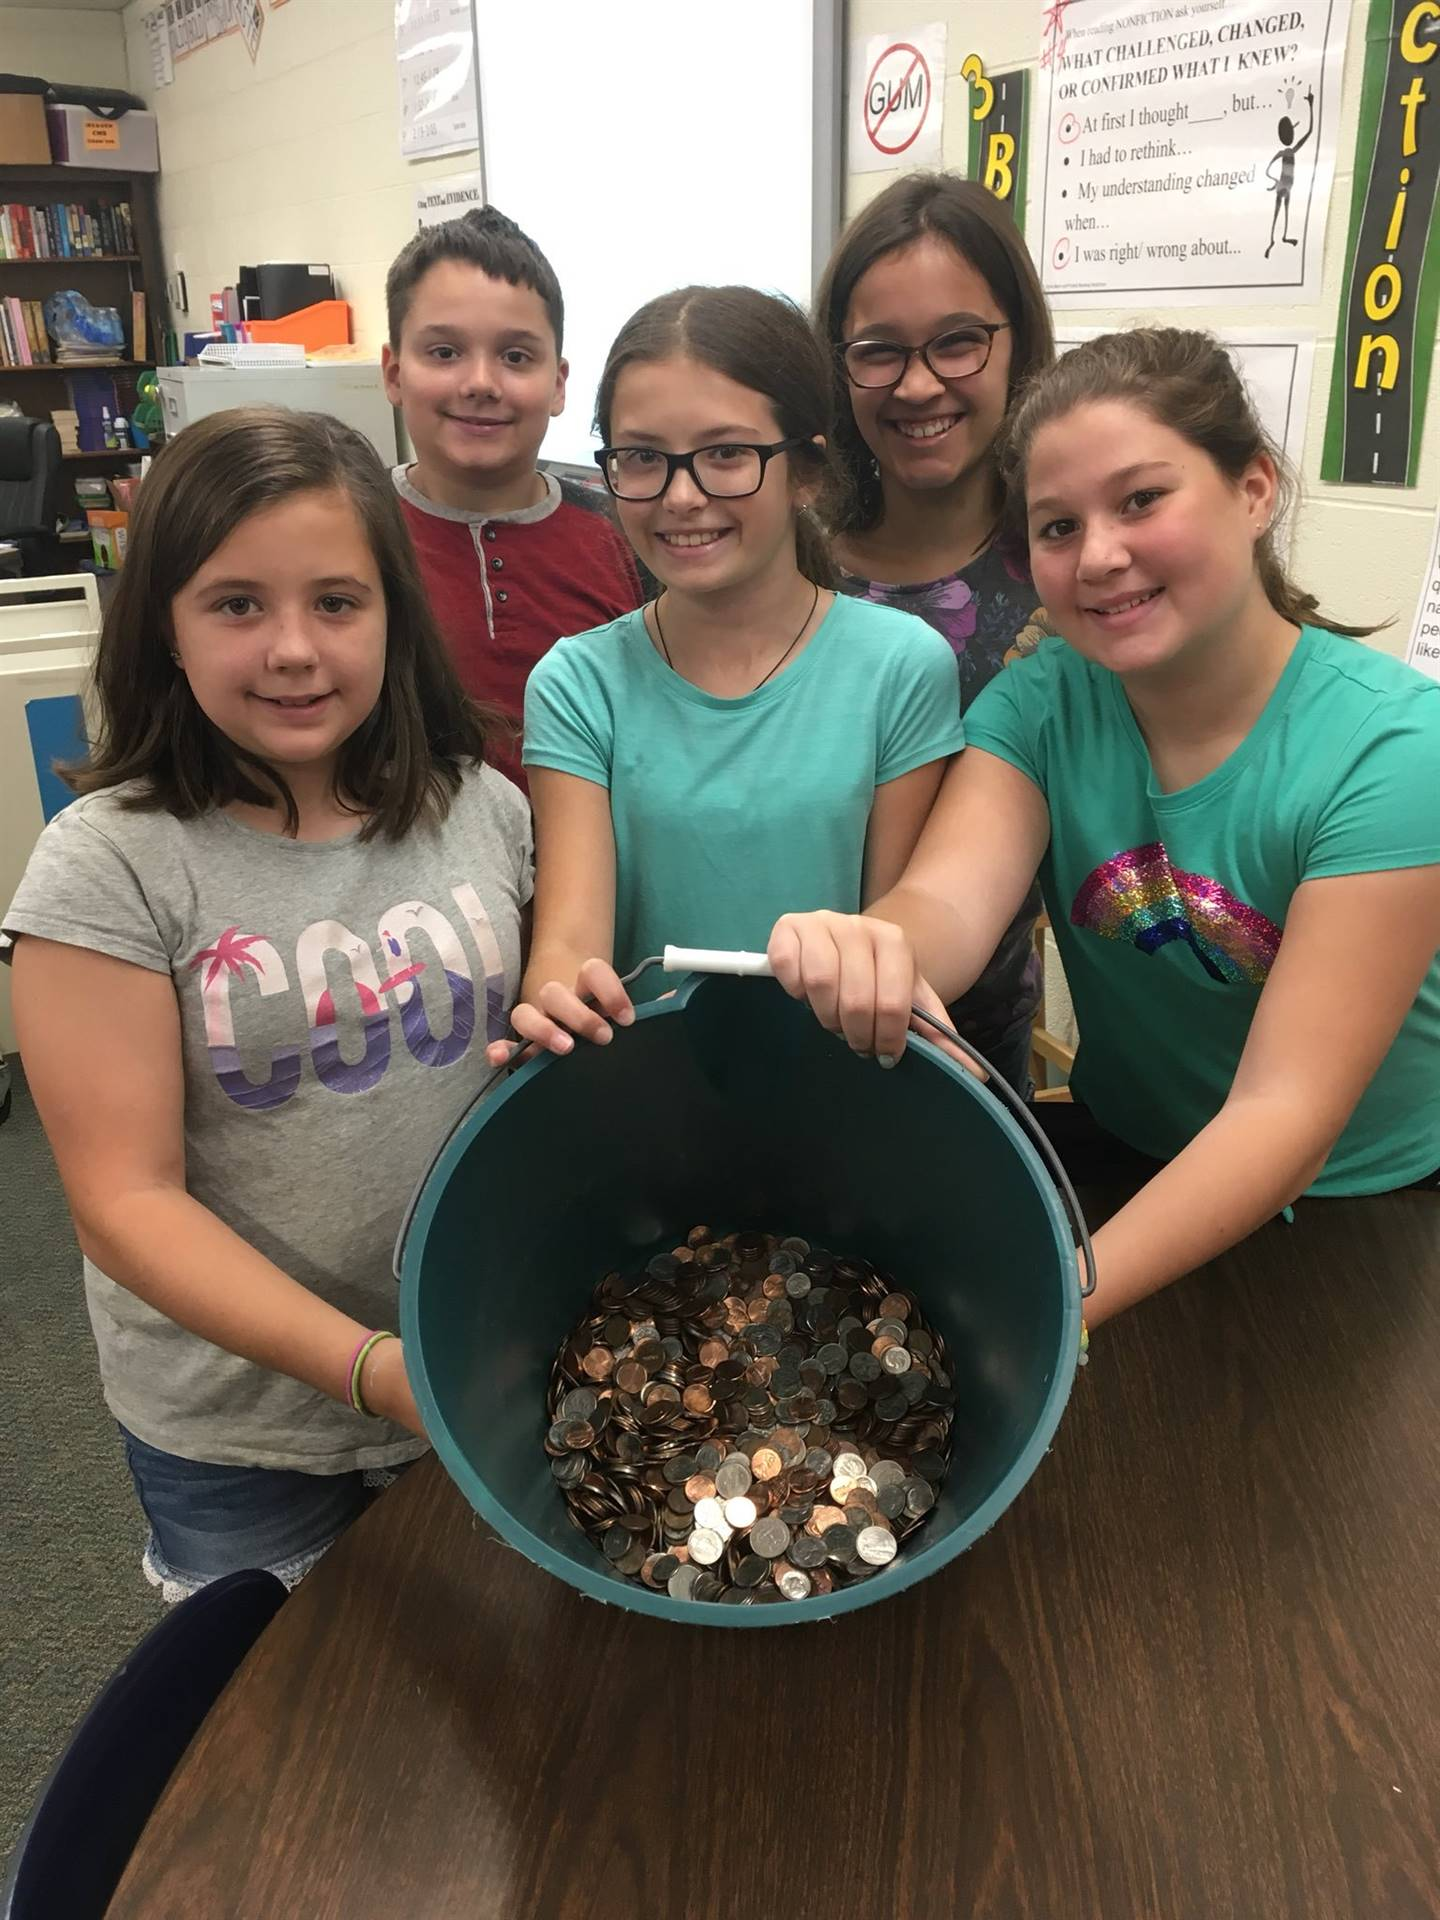 Photo 3:  5 CMS students gathered together and smiling with a bucket full of coins collected for the